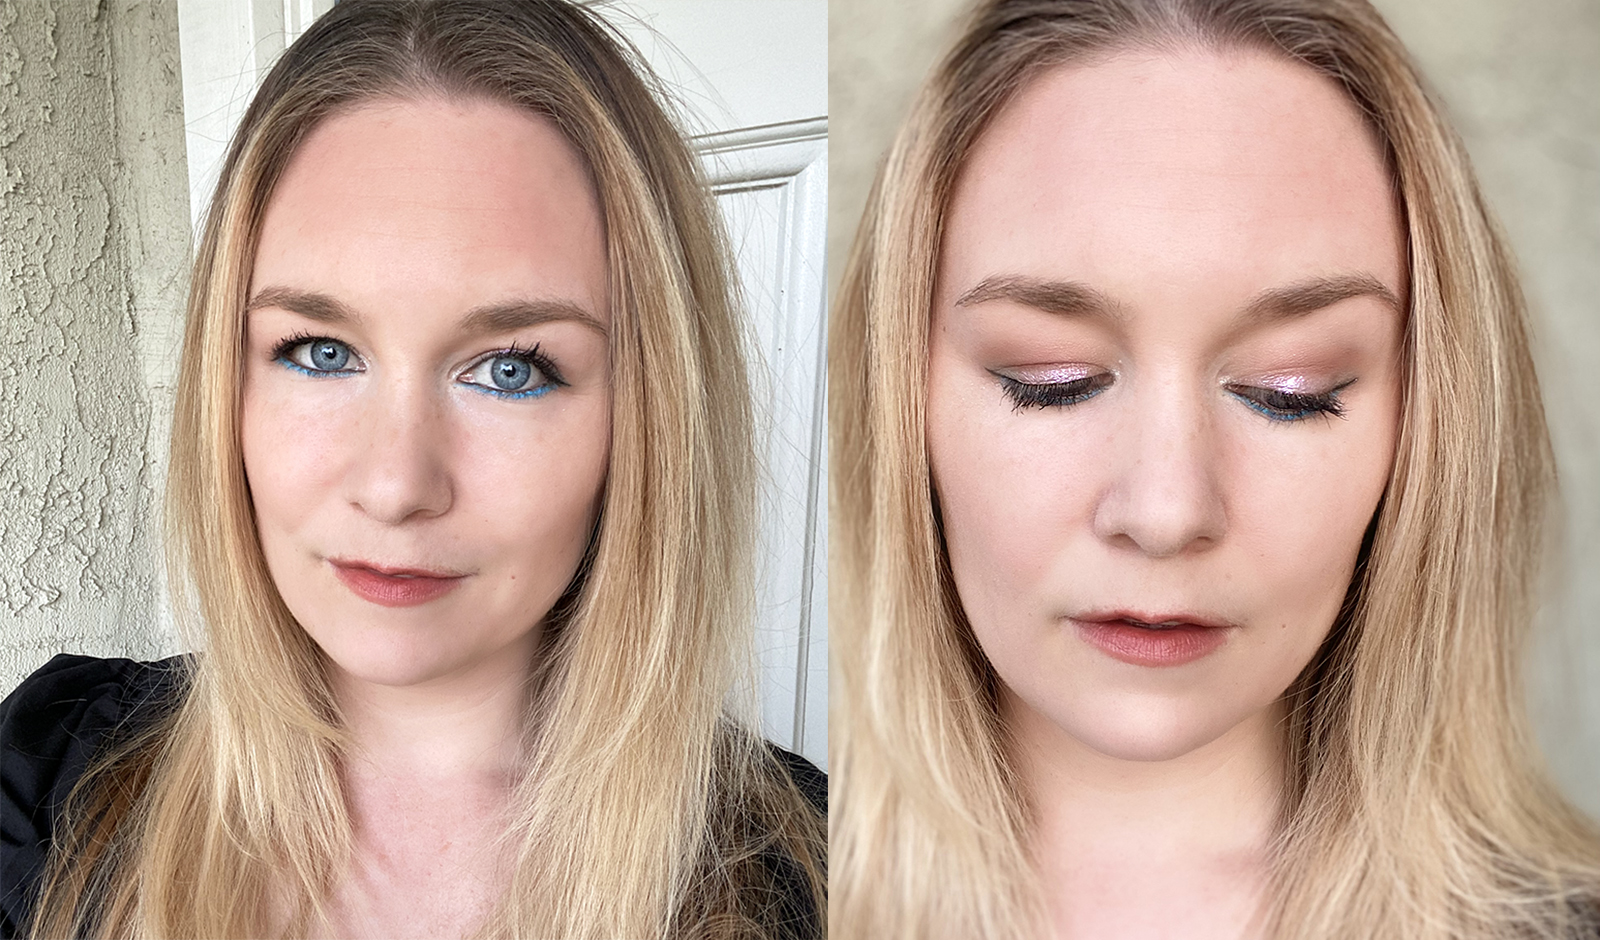 malorie-mackey-summer-makeup-look-main-imagev2